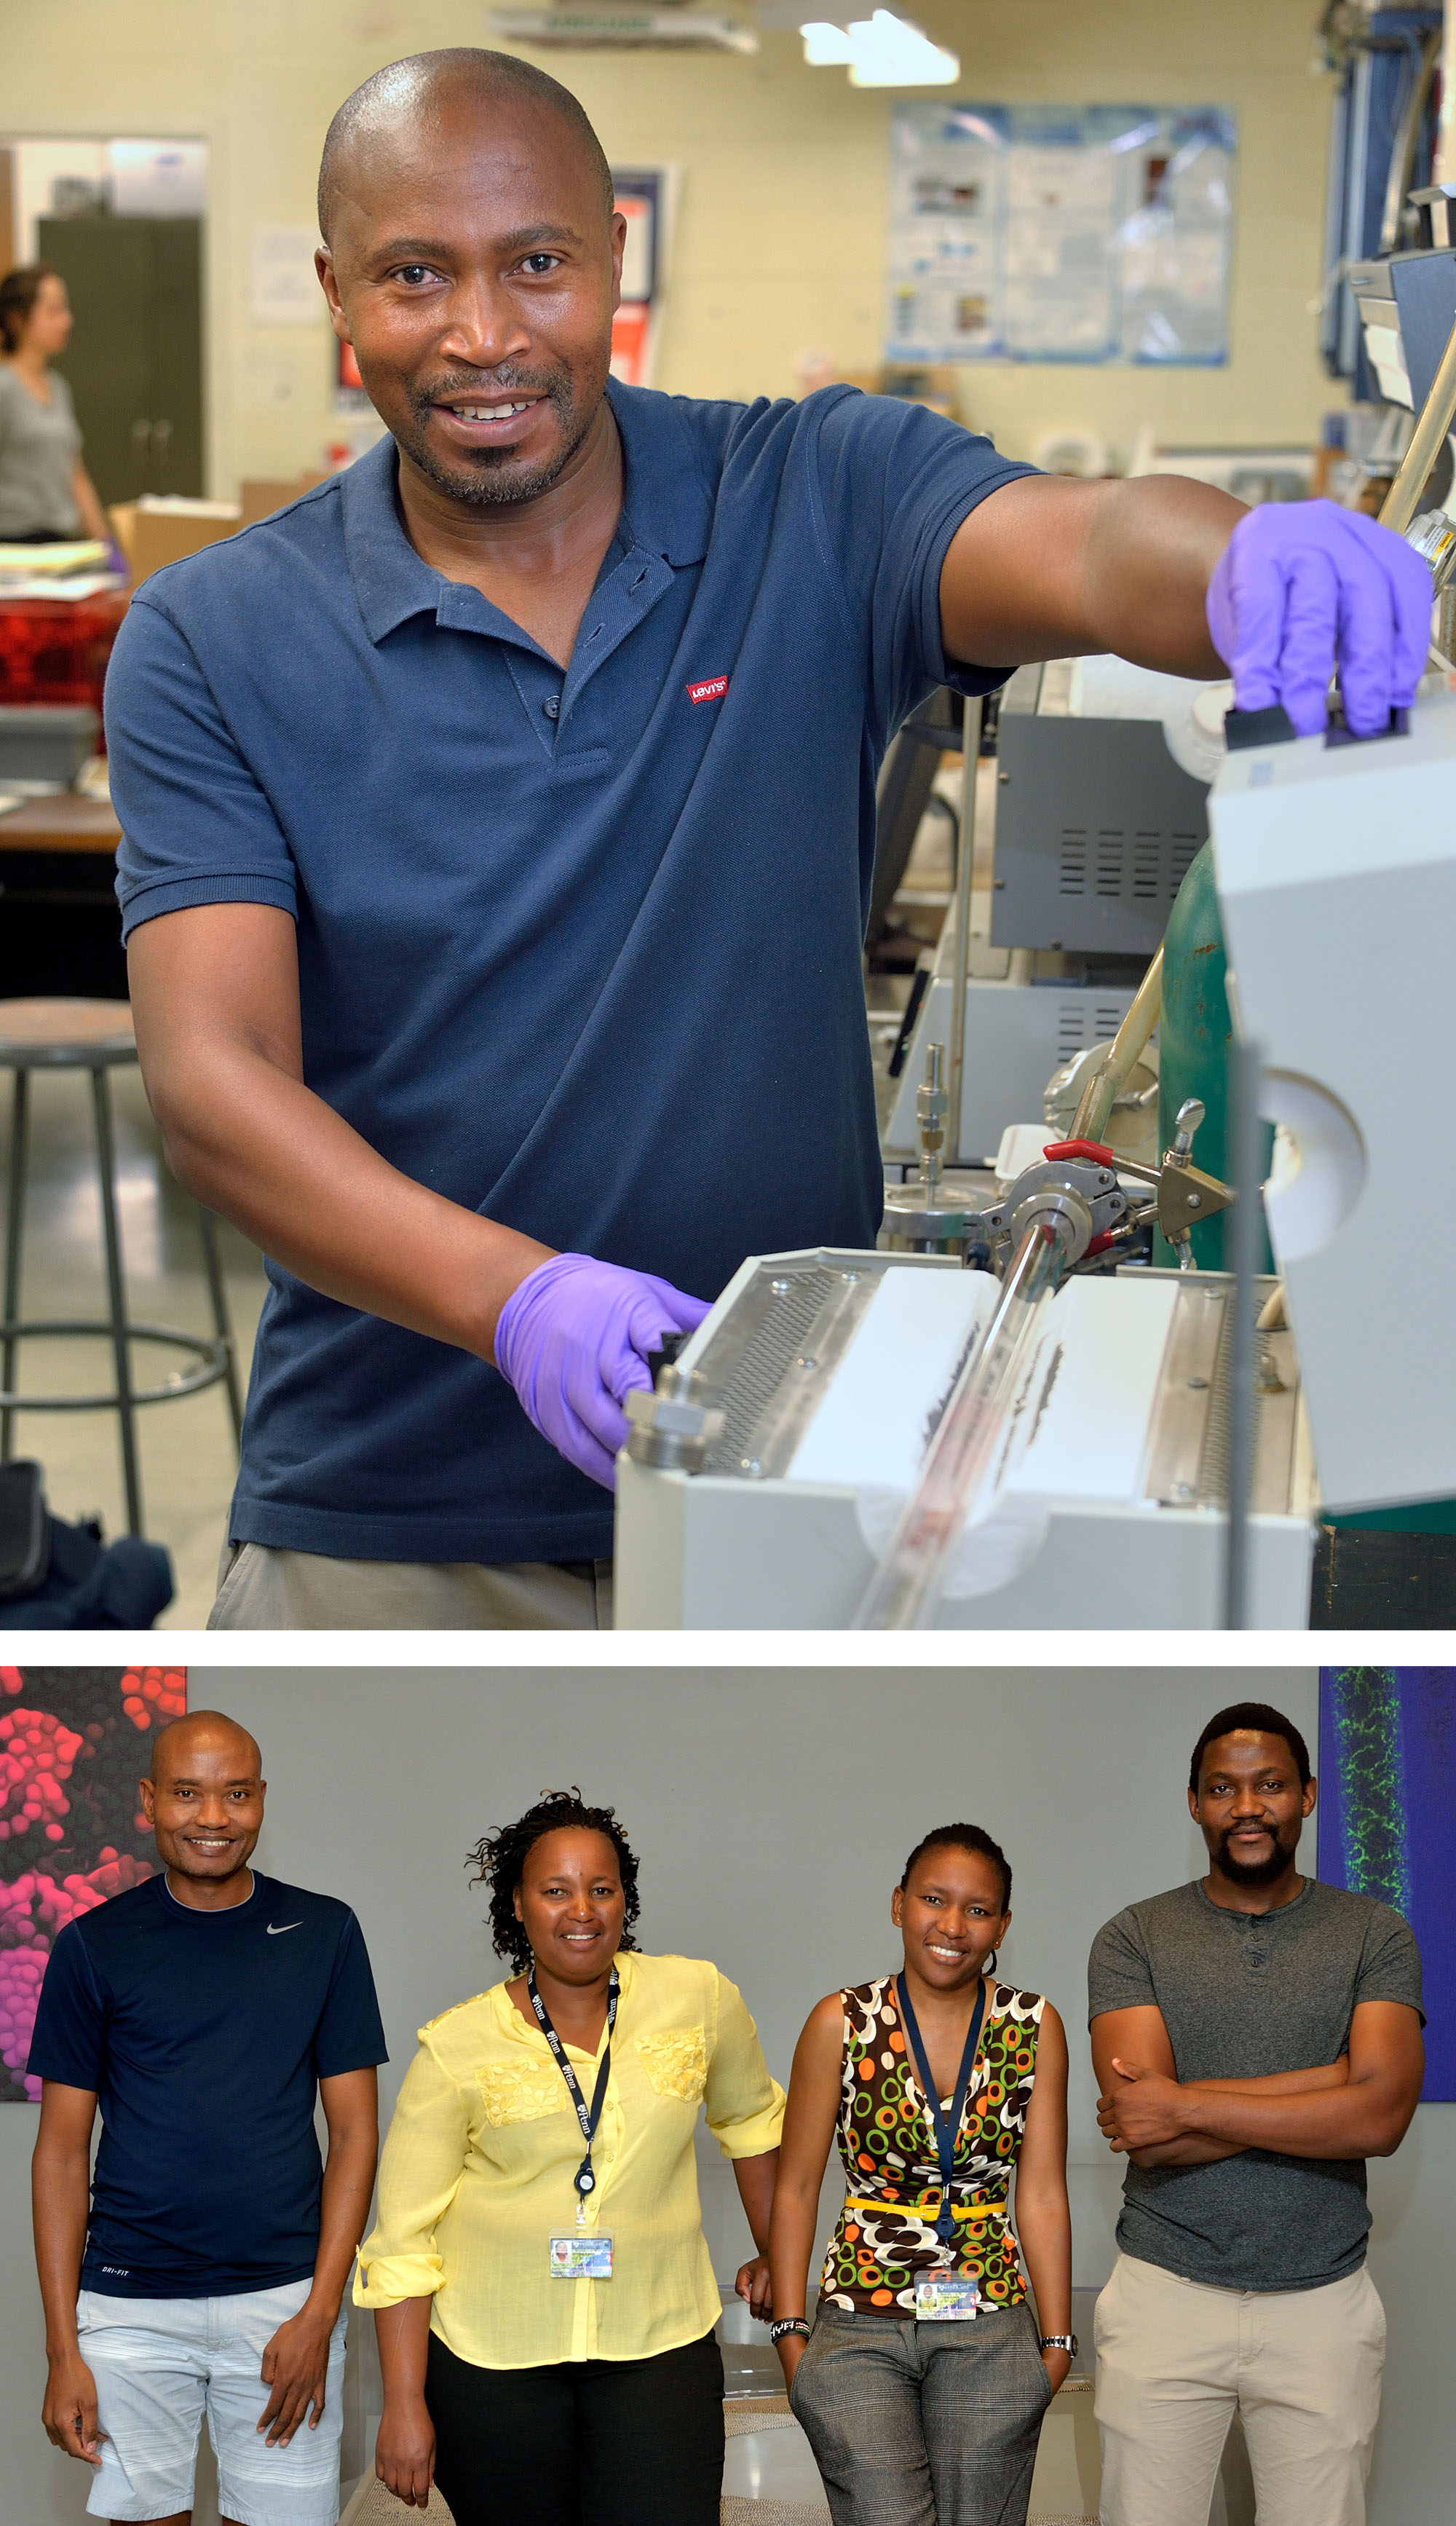 Prof. Moeketsi Mpholo (National U. of Lesotho), and his graduate student, Teboho Nchaba (U. of Cape Town) worked with Prof. Bau (MEAM). Palesa Phooko worked with Prof. Thomson (and now Prof. Anna in 2019). Dr. Tebello Mahamo (National U. of Lesotho) worked with Prof. Berry (and now Prof. Tomson in 2019).